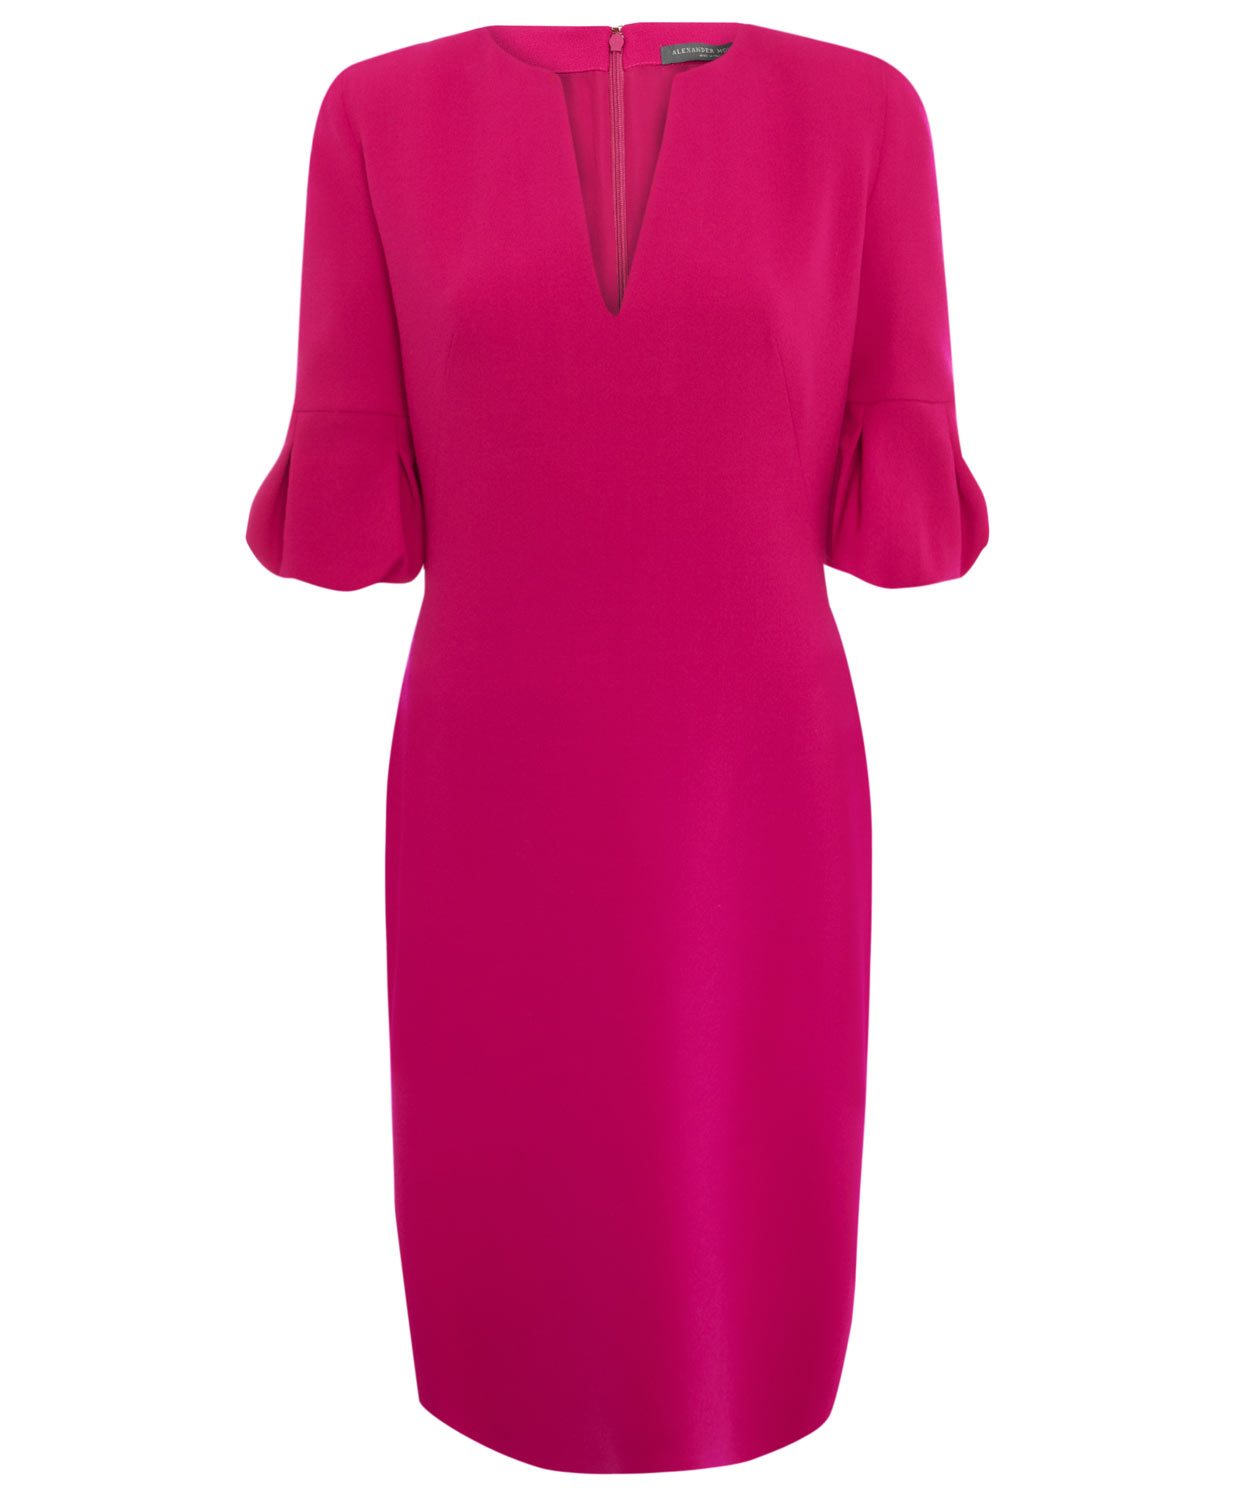 Alexander Mcqueen Fuschia Tulip Sleeve Dress in Pink ...